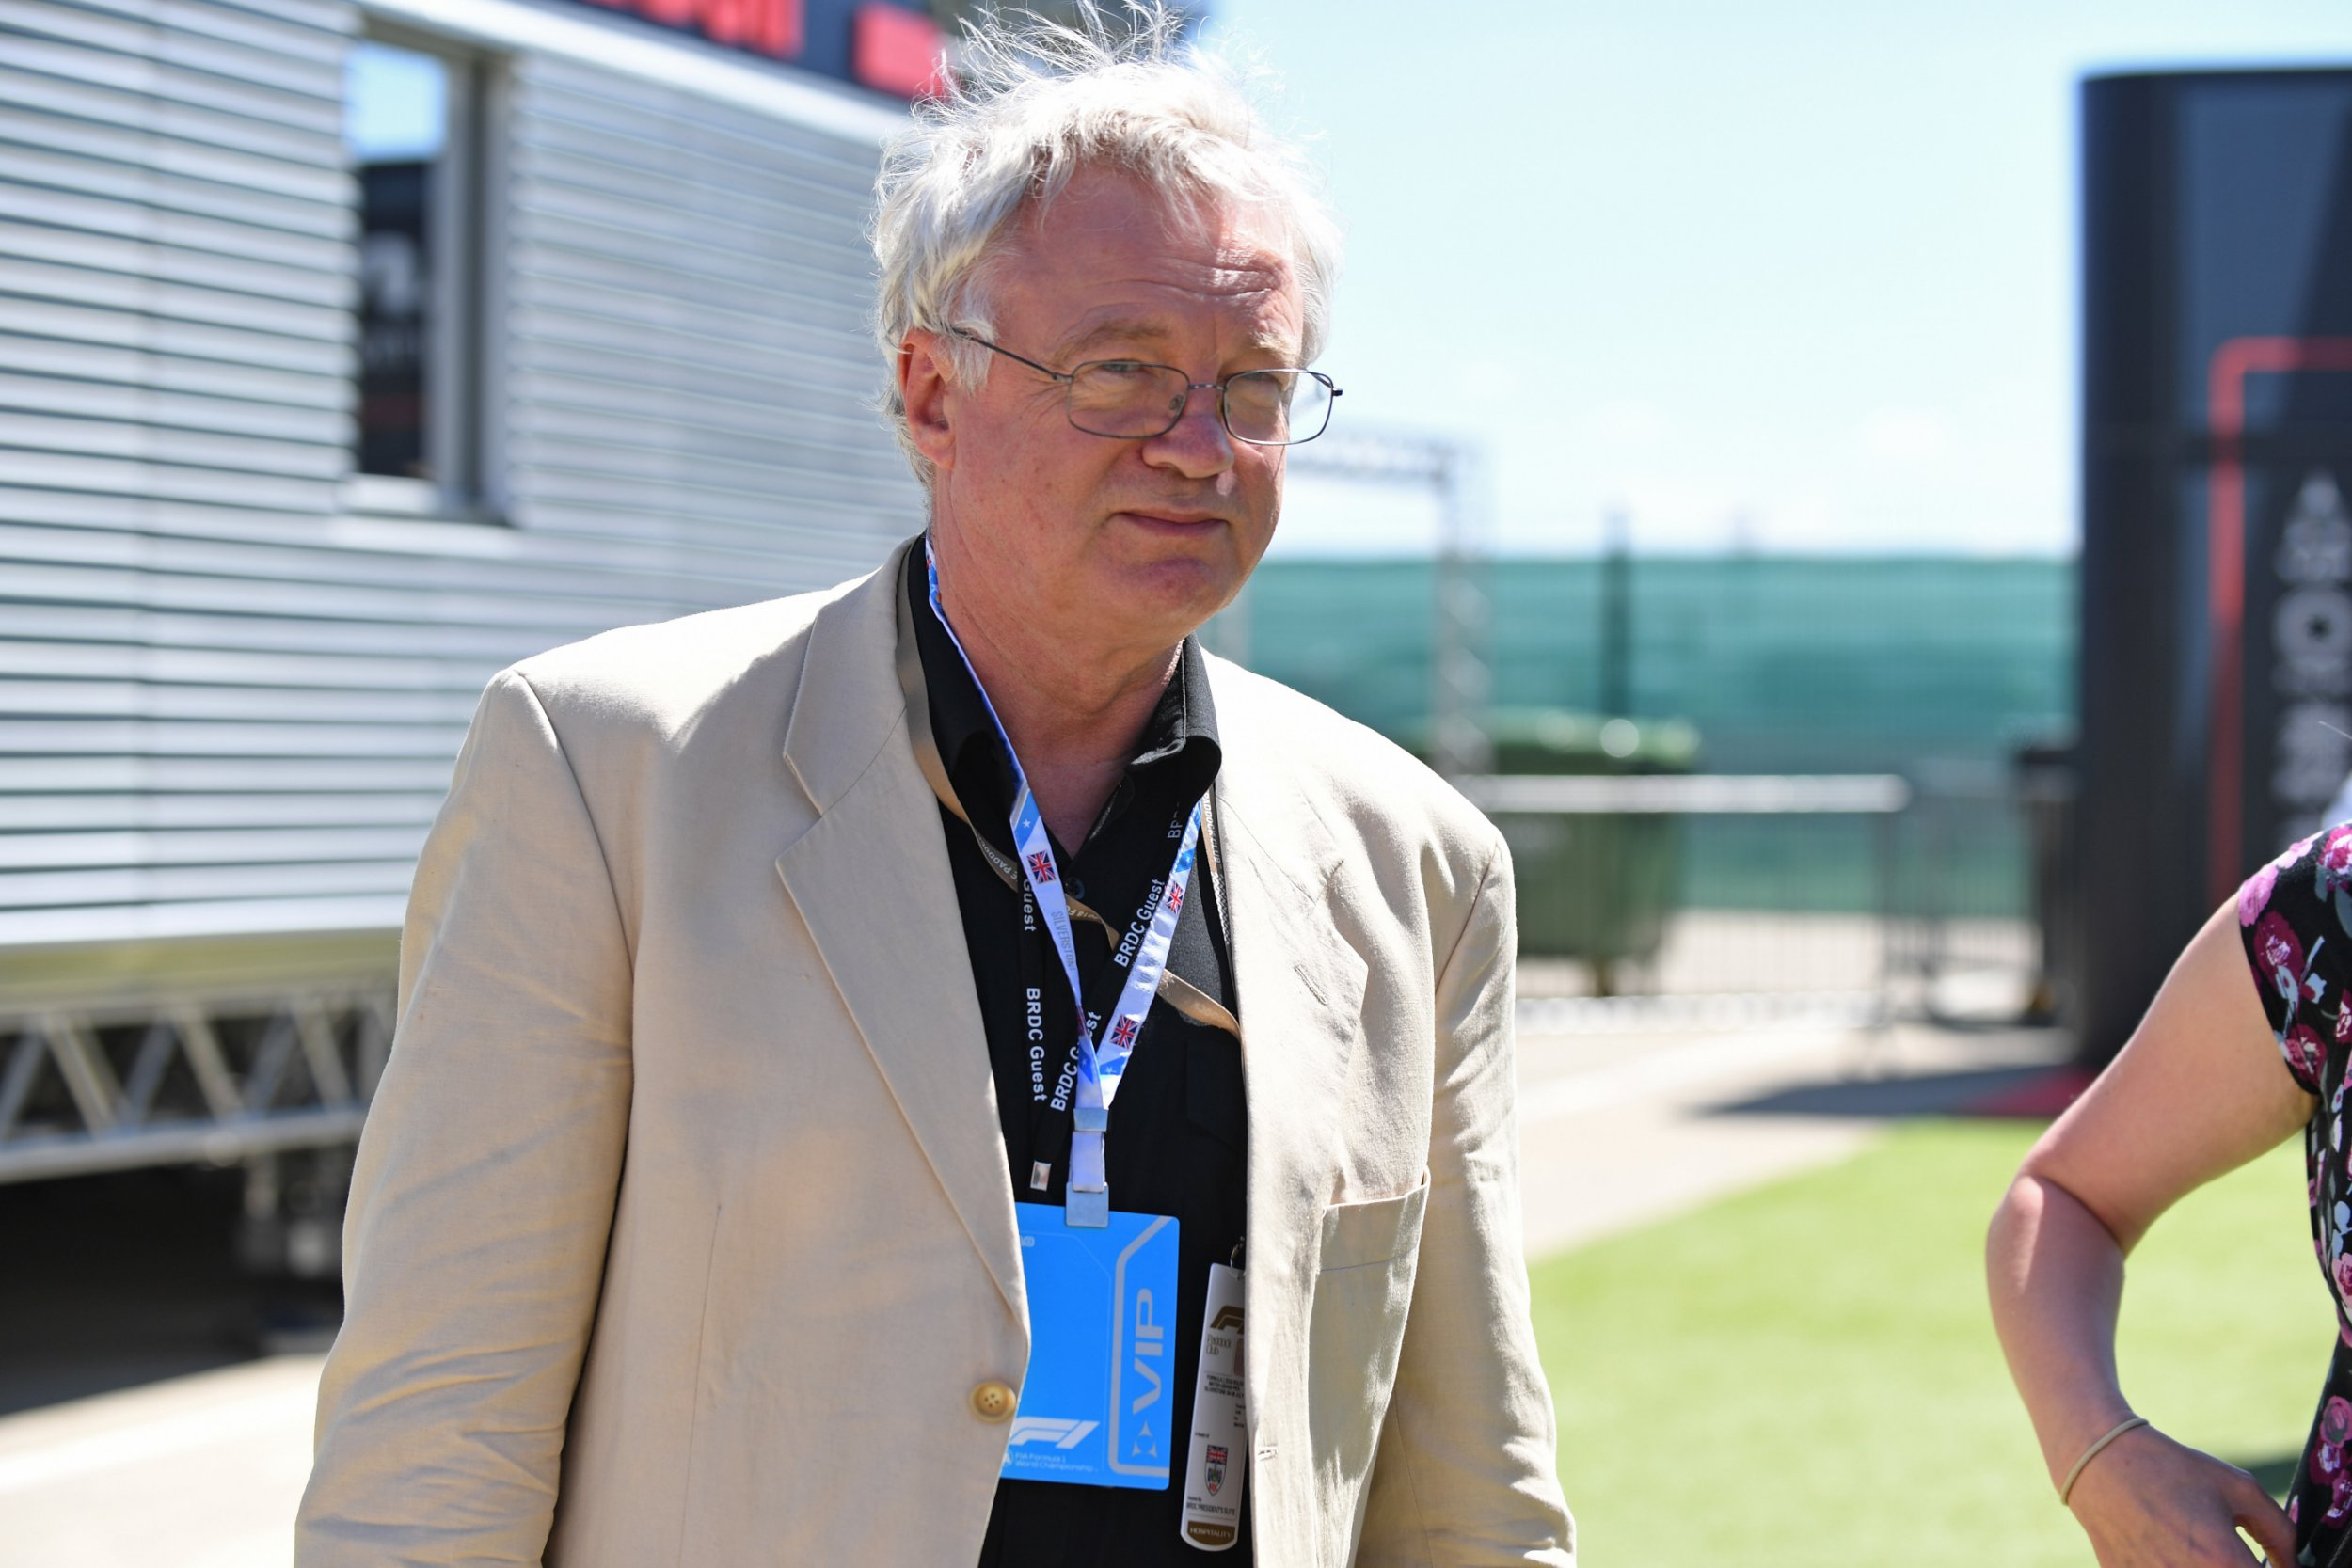 Mandatory Credit: Photo by Simon Galloway/Sutton Images/REX/Shutterstock (9745130c) David Davis MP (GBR) during the British GP at Silverstone on July 08, 2018 in Silverstone, United Kingdom. 2018 British GP - 08 Jul 2018